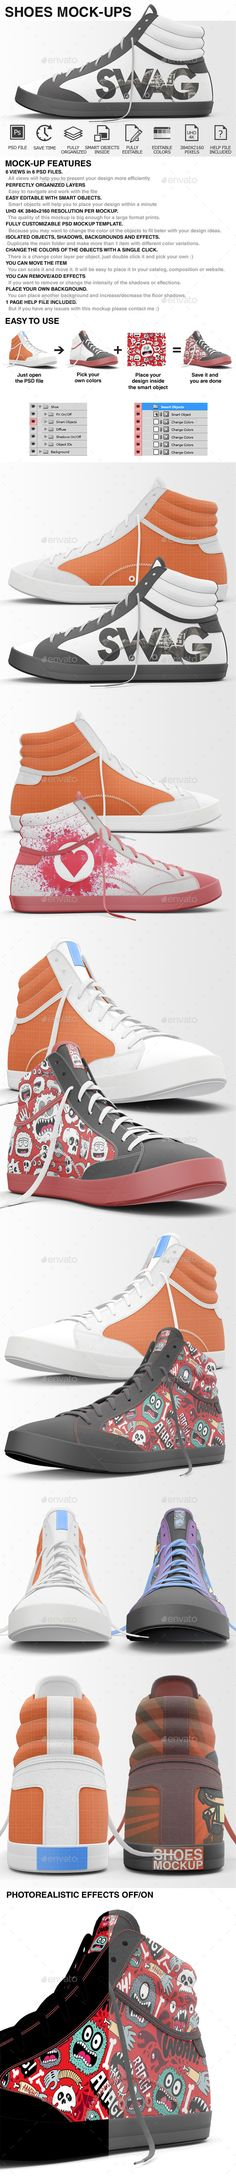 26 best sneakers vans shoes images on pinterest shoe template